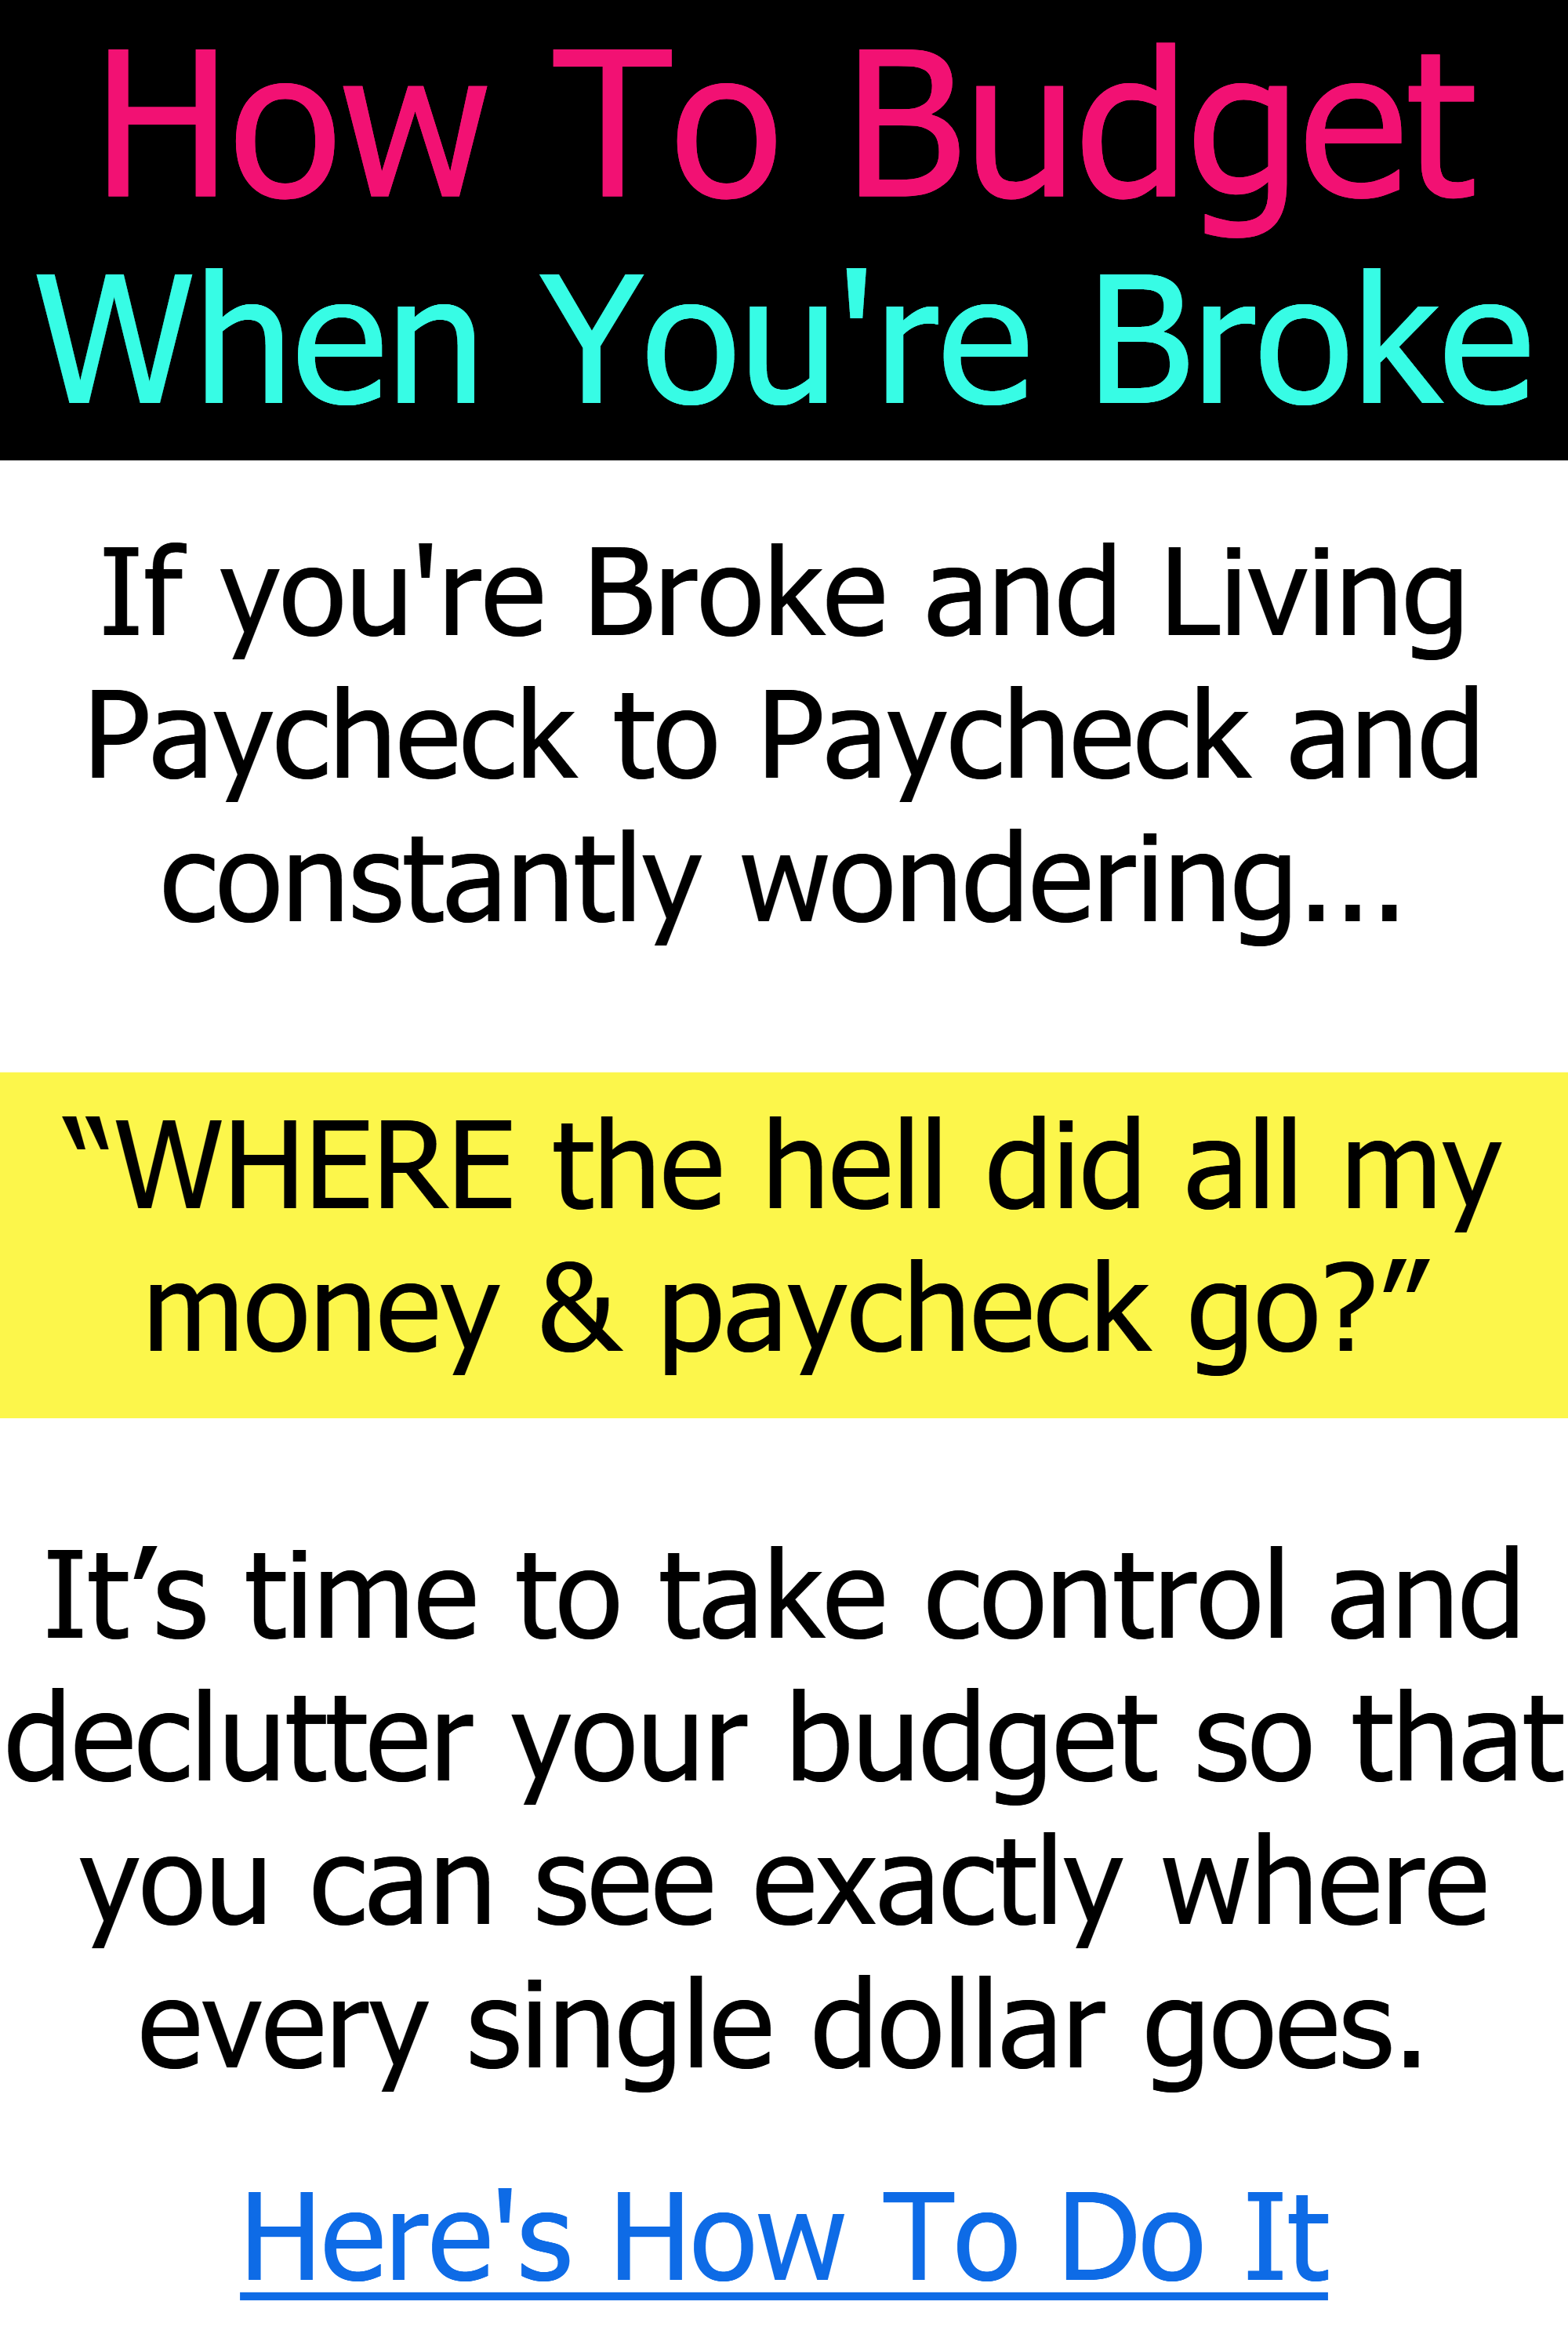 How To Budget When You Re Broke If You Re Broke And Living Paycheck To Paycheck And Constantly Wondering Where The Hel Budgeting Budgeting Money Declutter